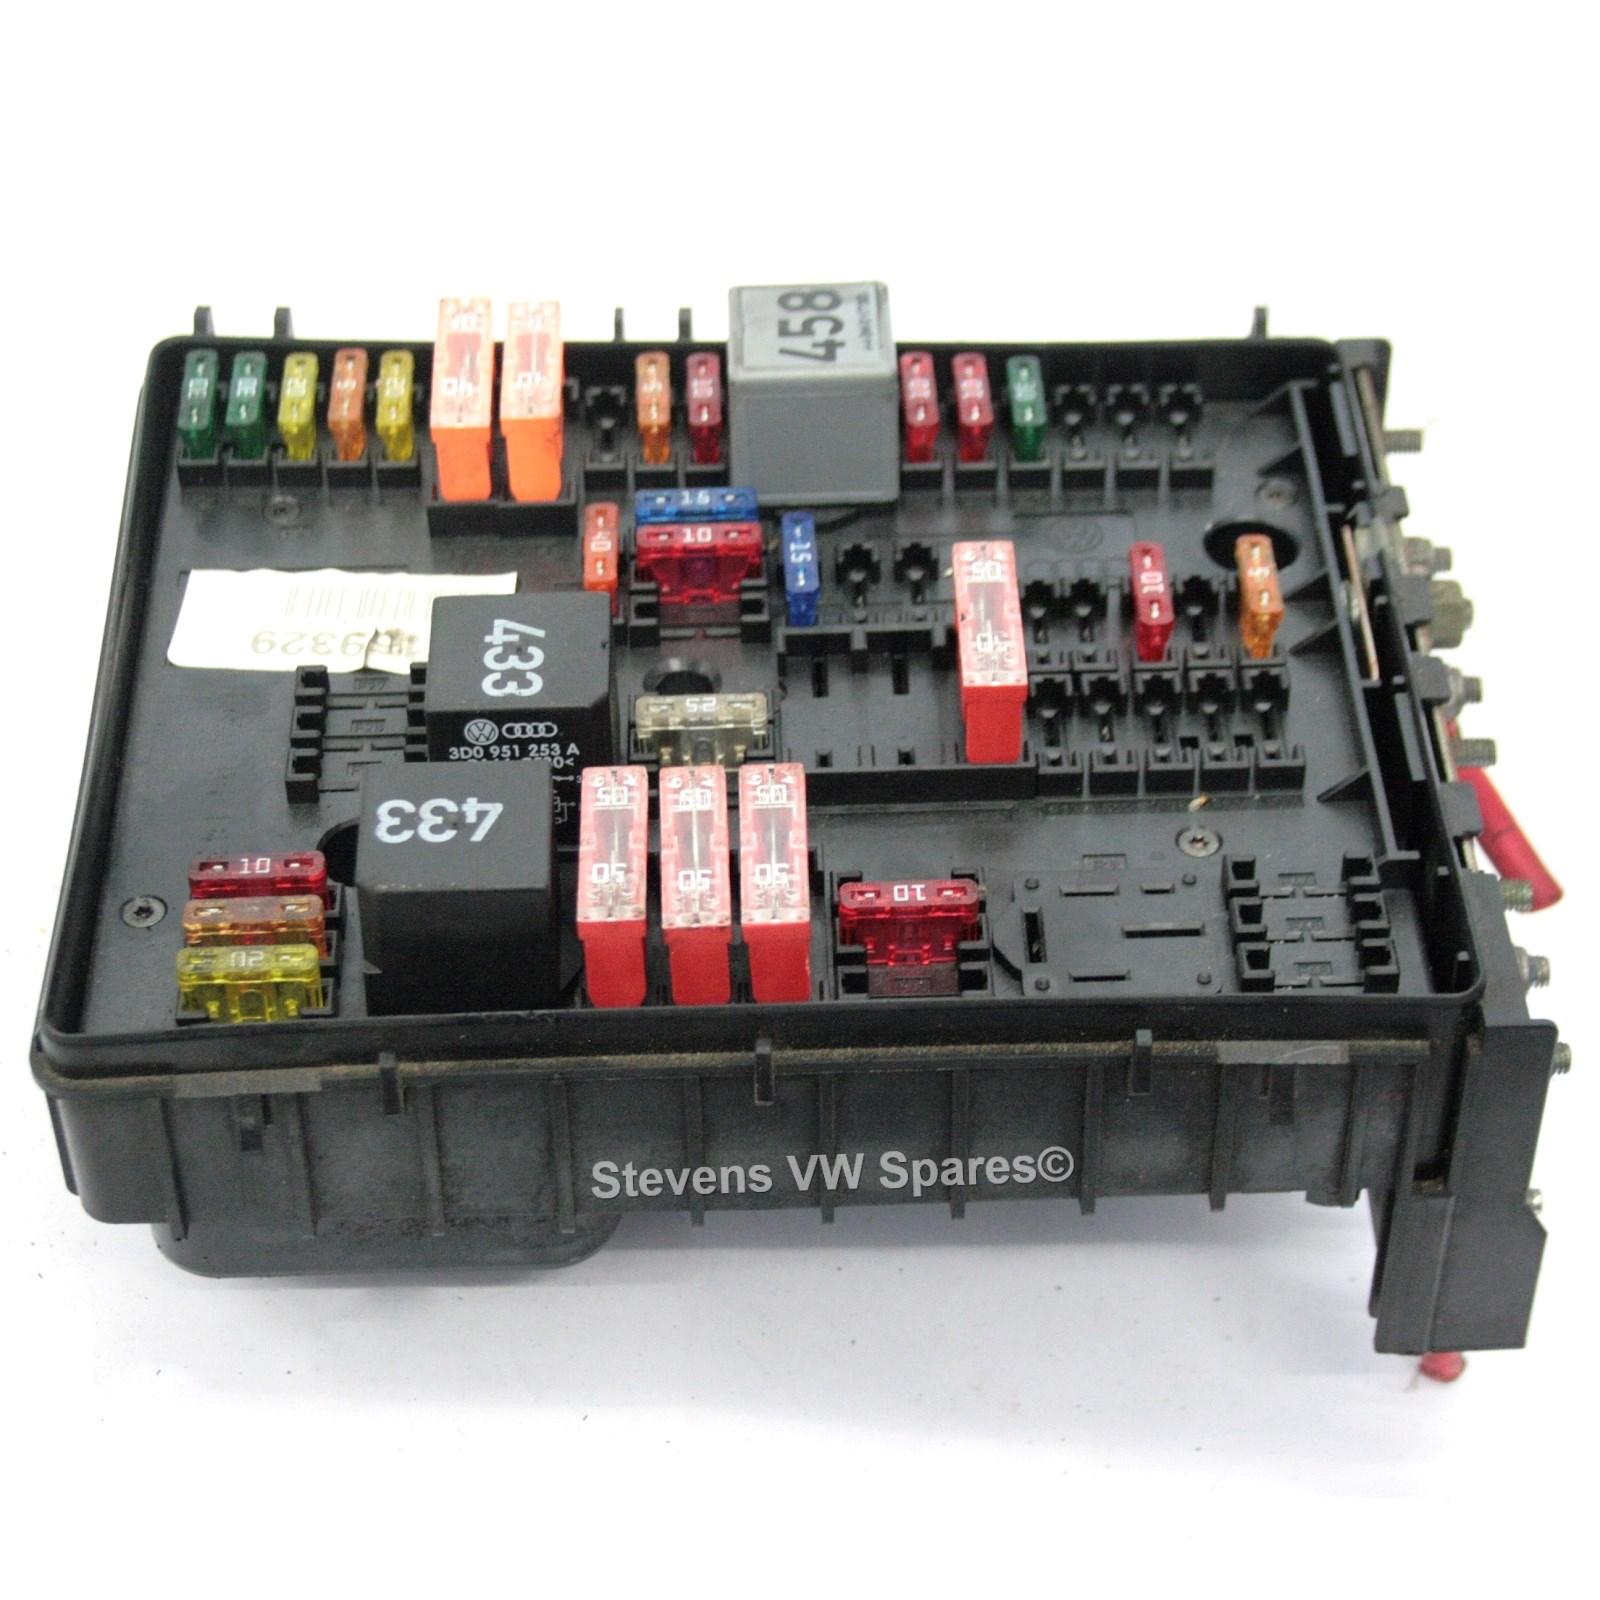 Peugeot 307 Engine Fuse Box Fault Wiring Diagram Libraries K2v W Jetta Simple Schemapeugeot Library Opel